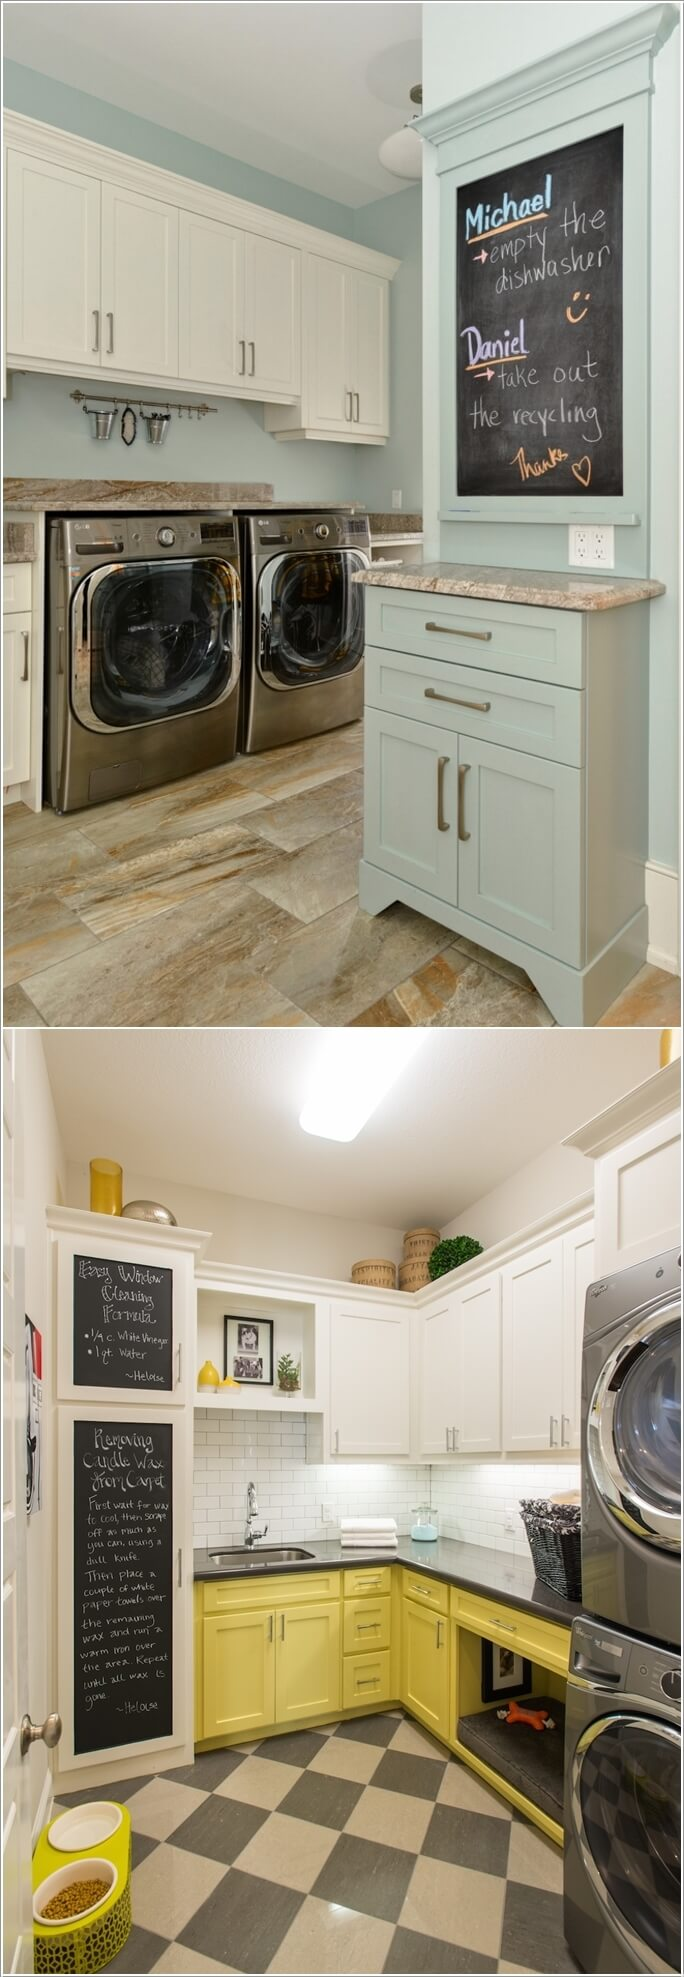 15-interesting-features-to-add-to-your-laundry-room-11